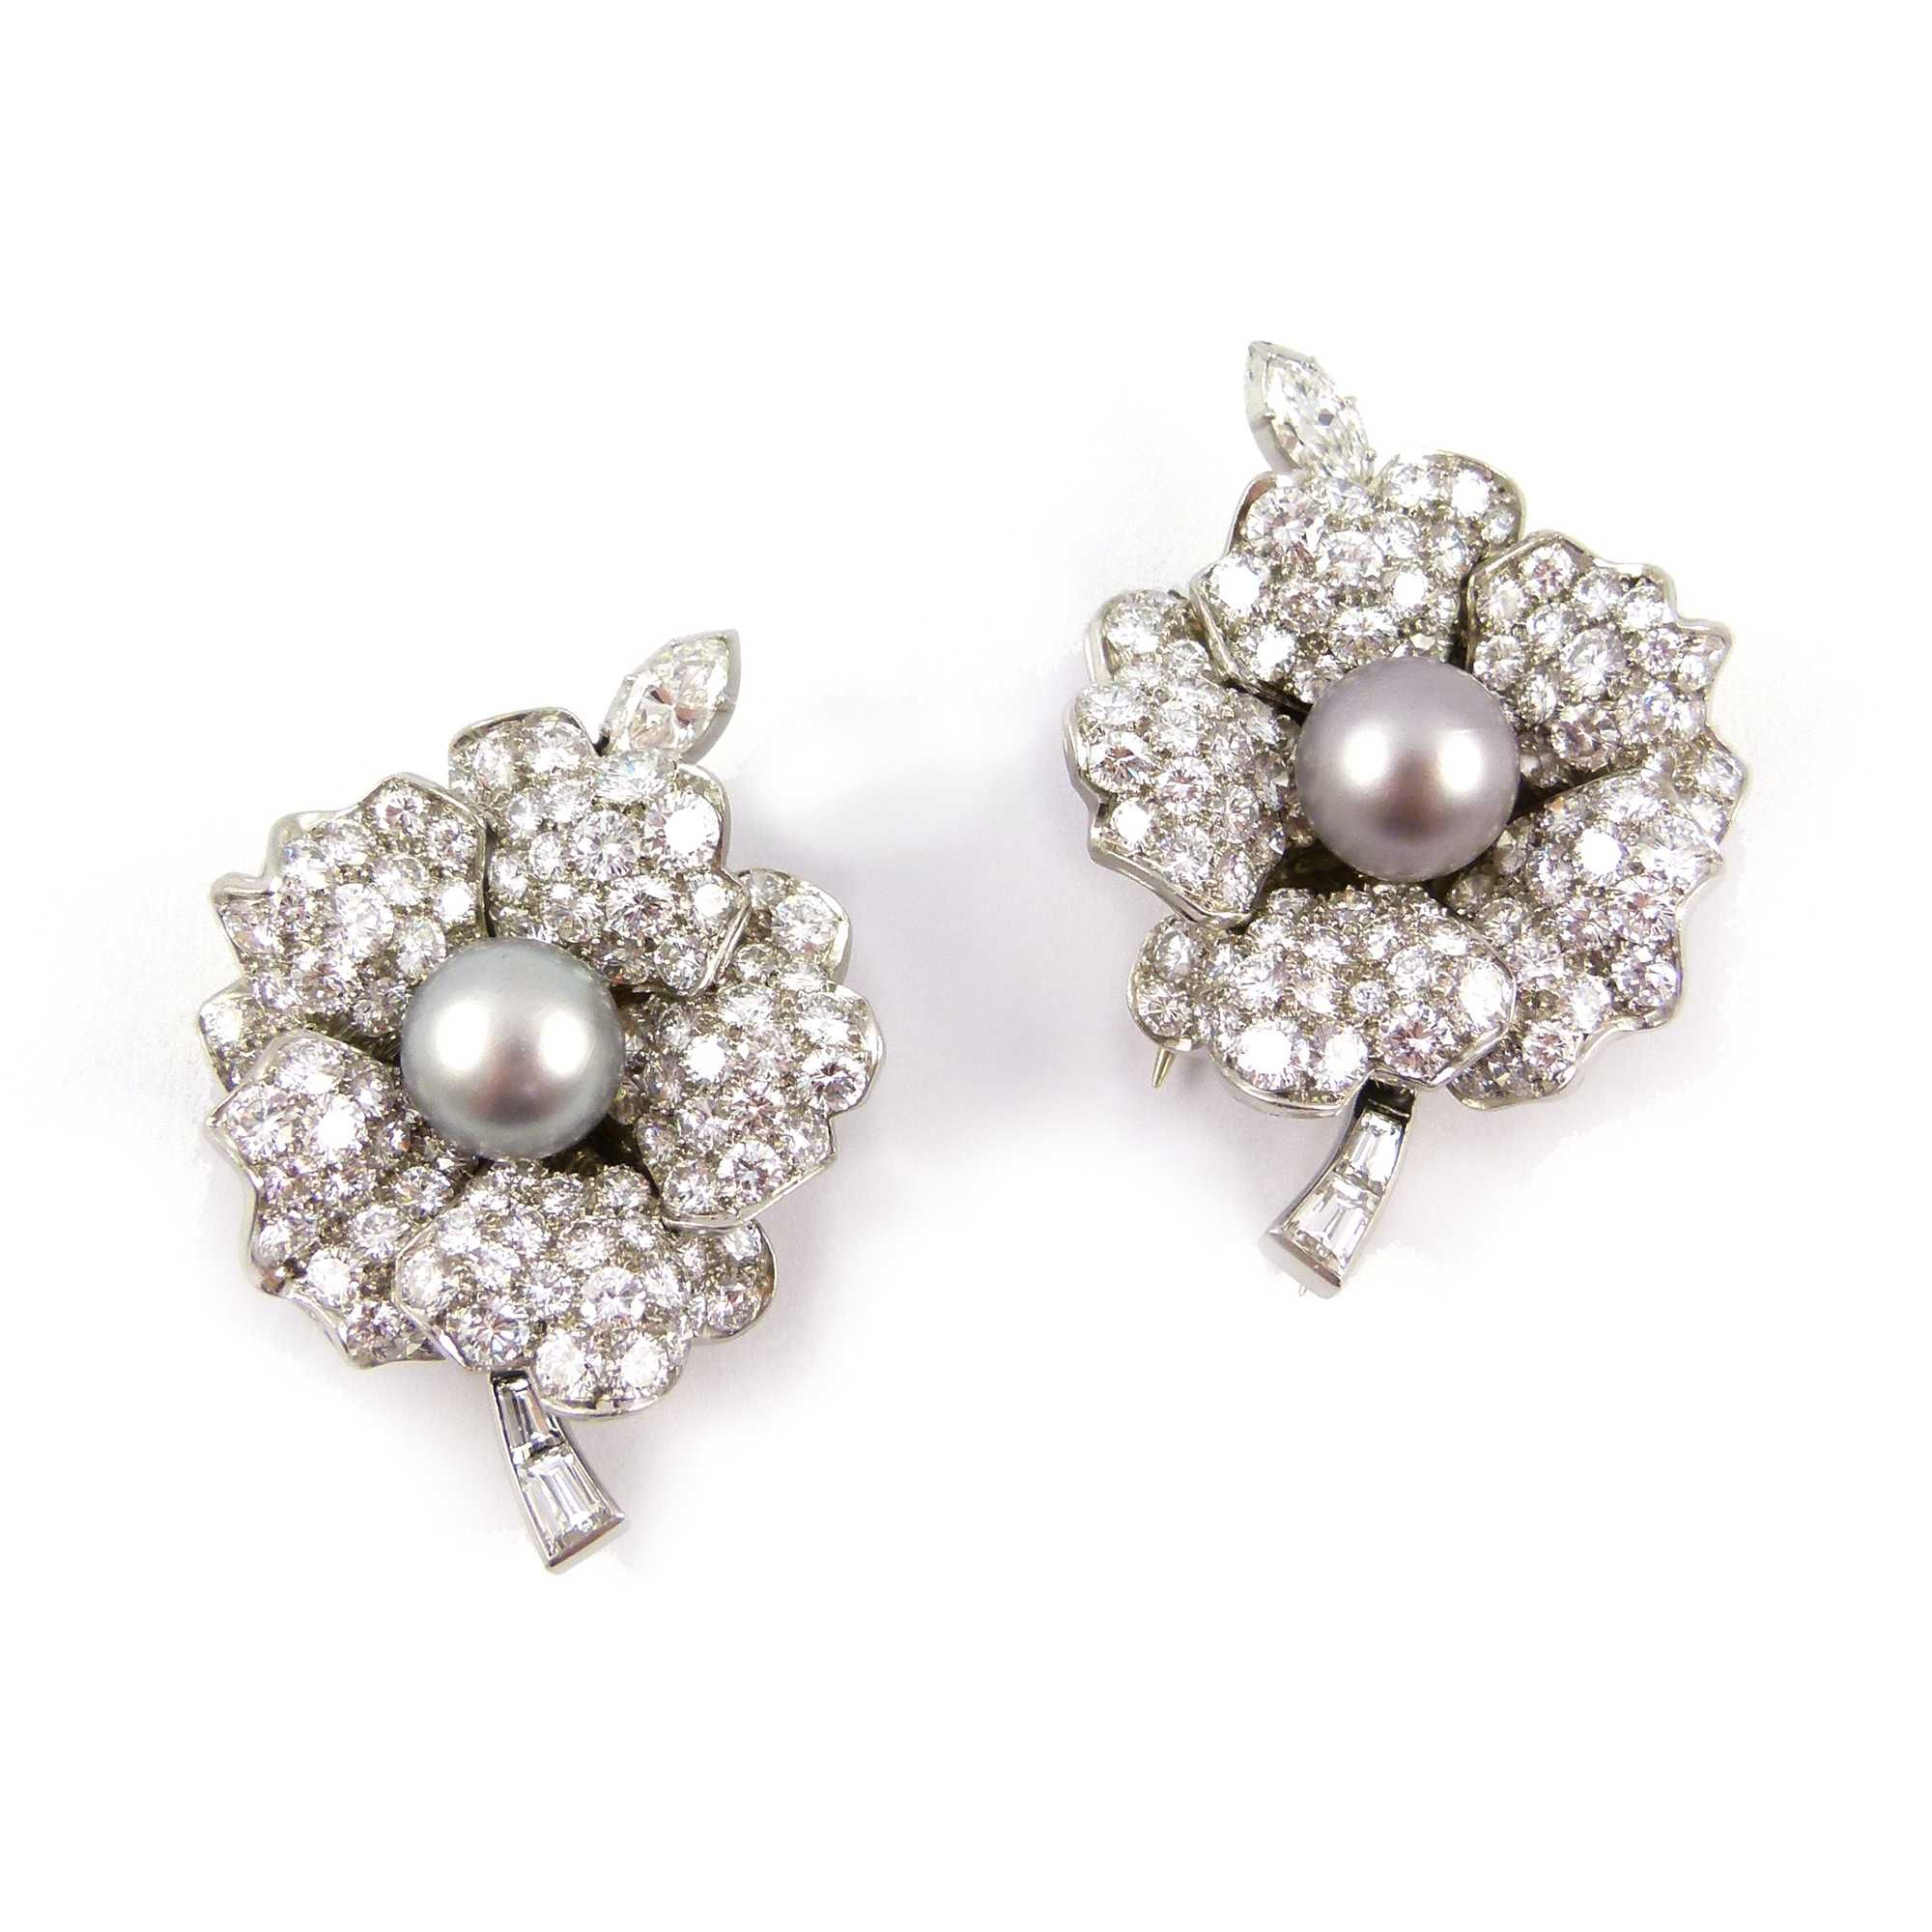 - Pair of mid 20th century grey pearl and diamond clip brooches converting to earrings, c.1955,